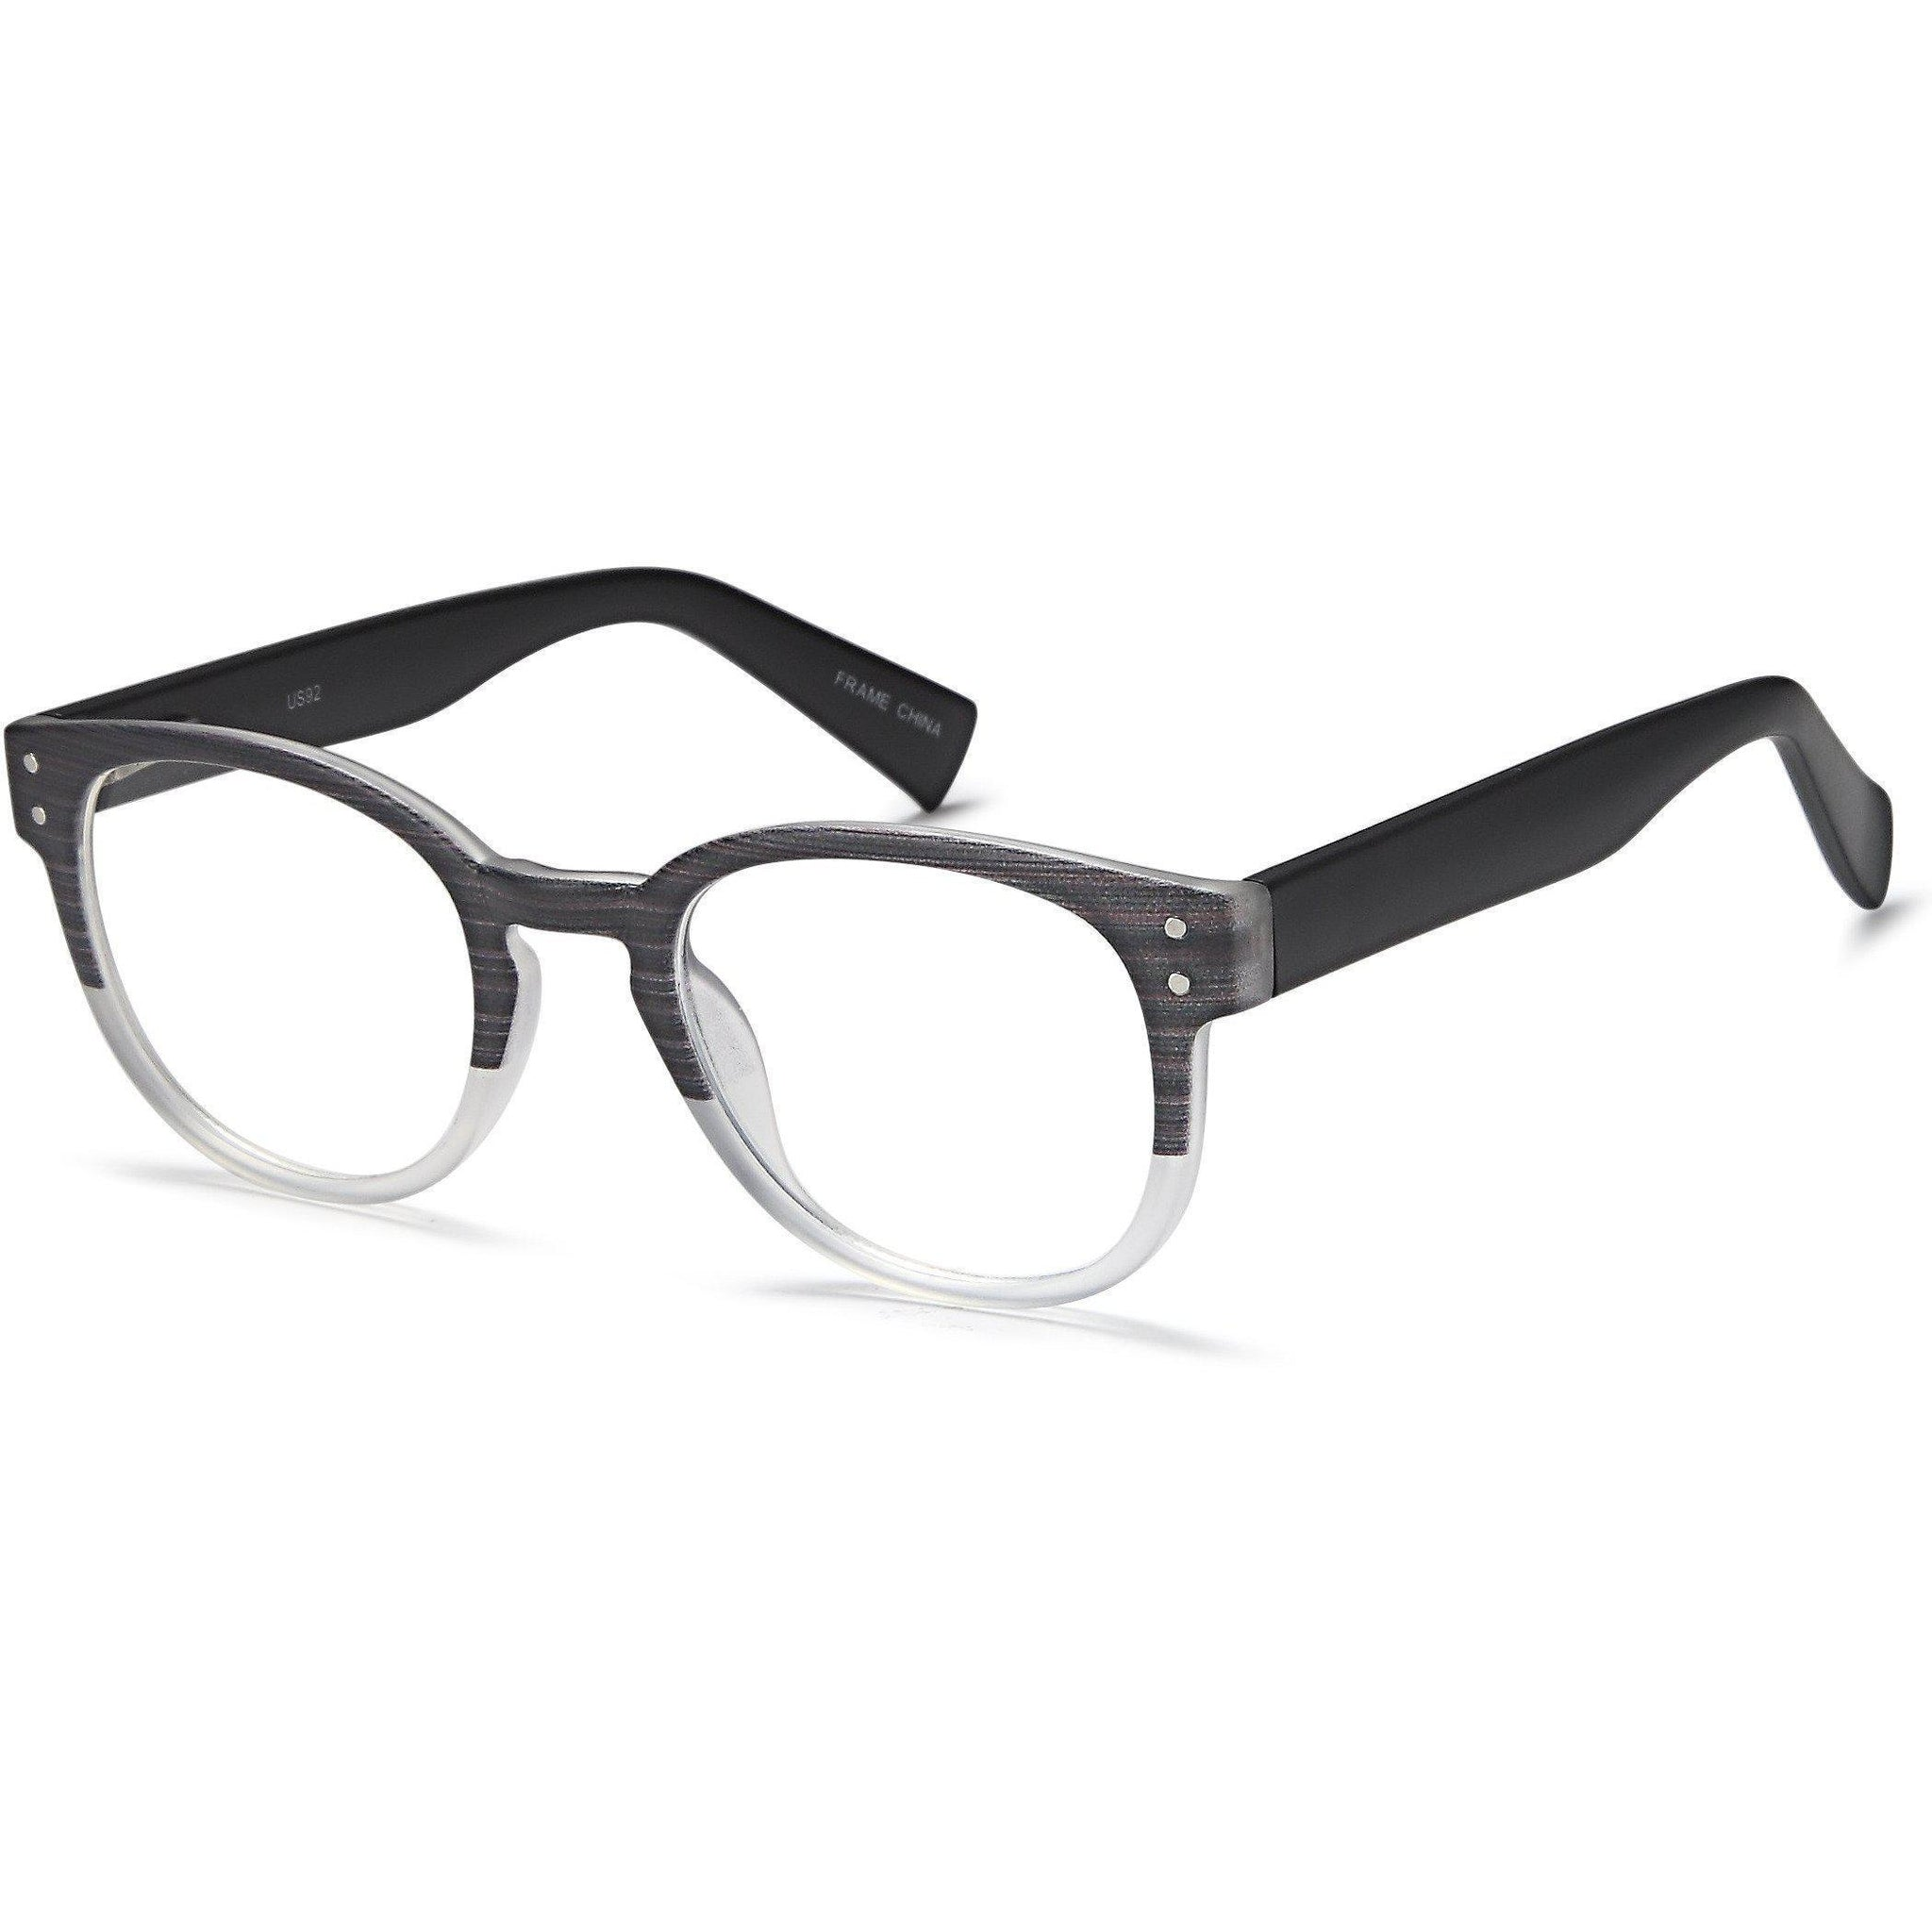 4U Prescription Glasses US 92 Optical Eyeglasses Frame - timetoshade